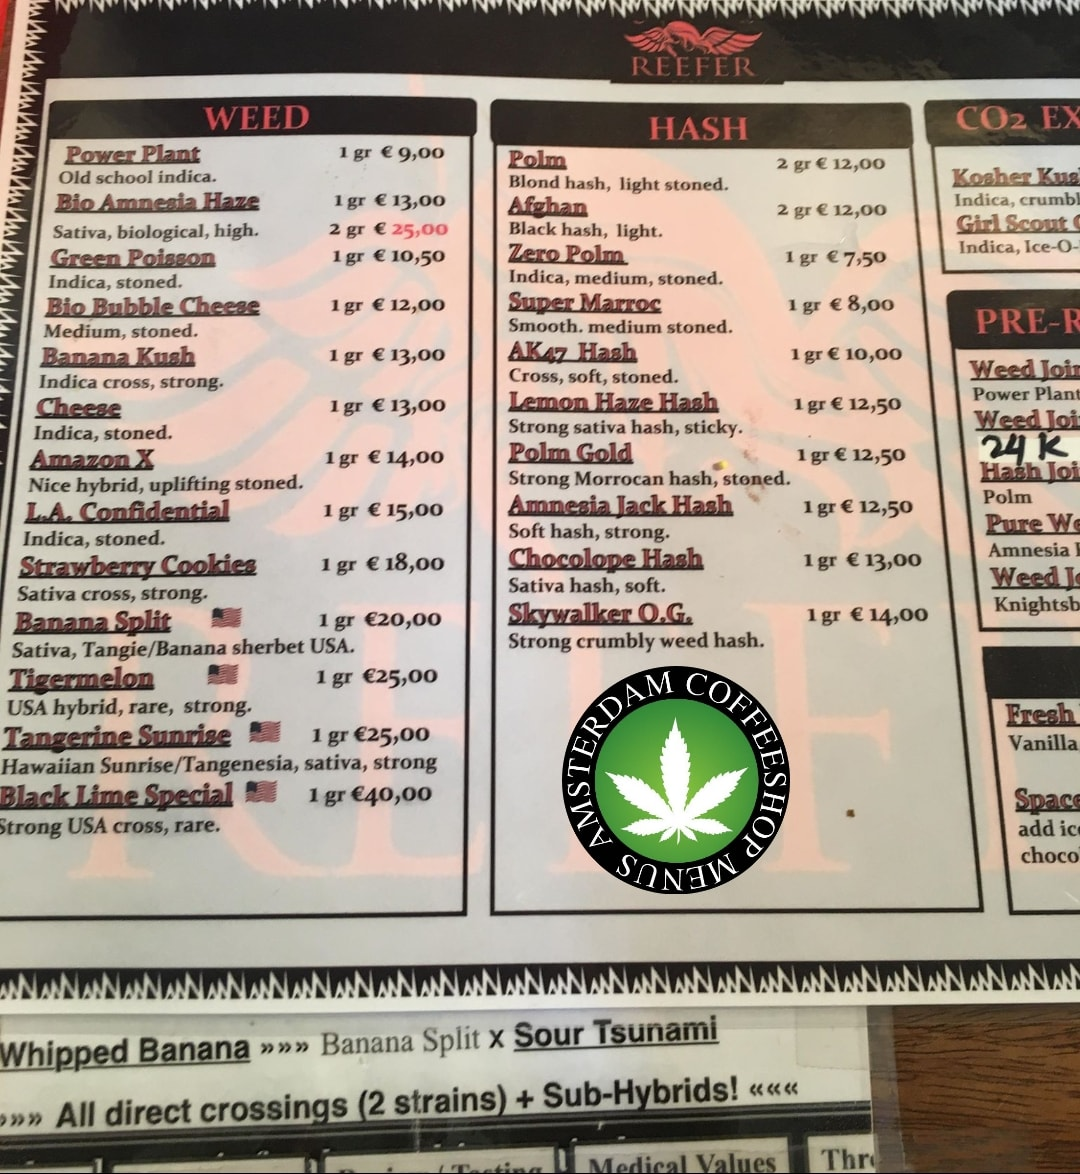 Coffeeshop Reefer 2018 March Smoker City Trip